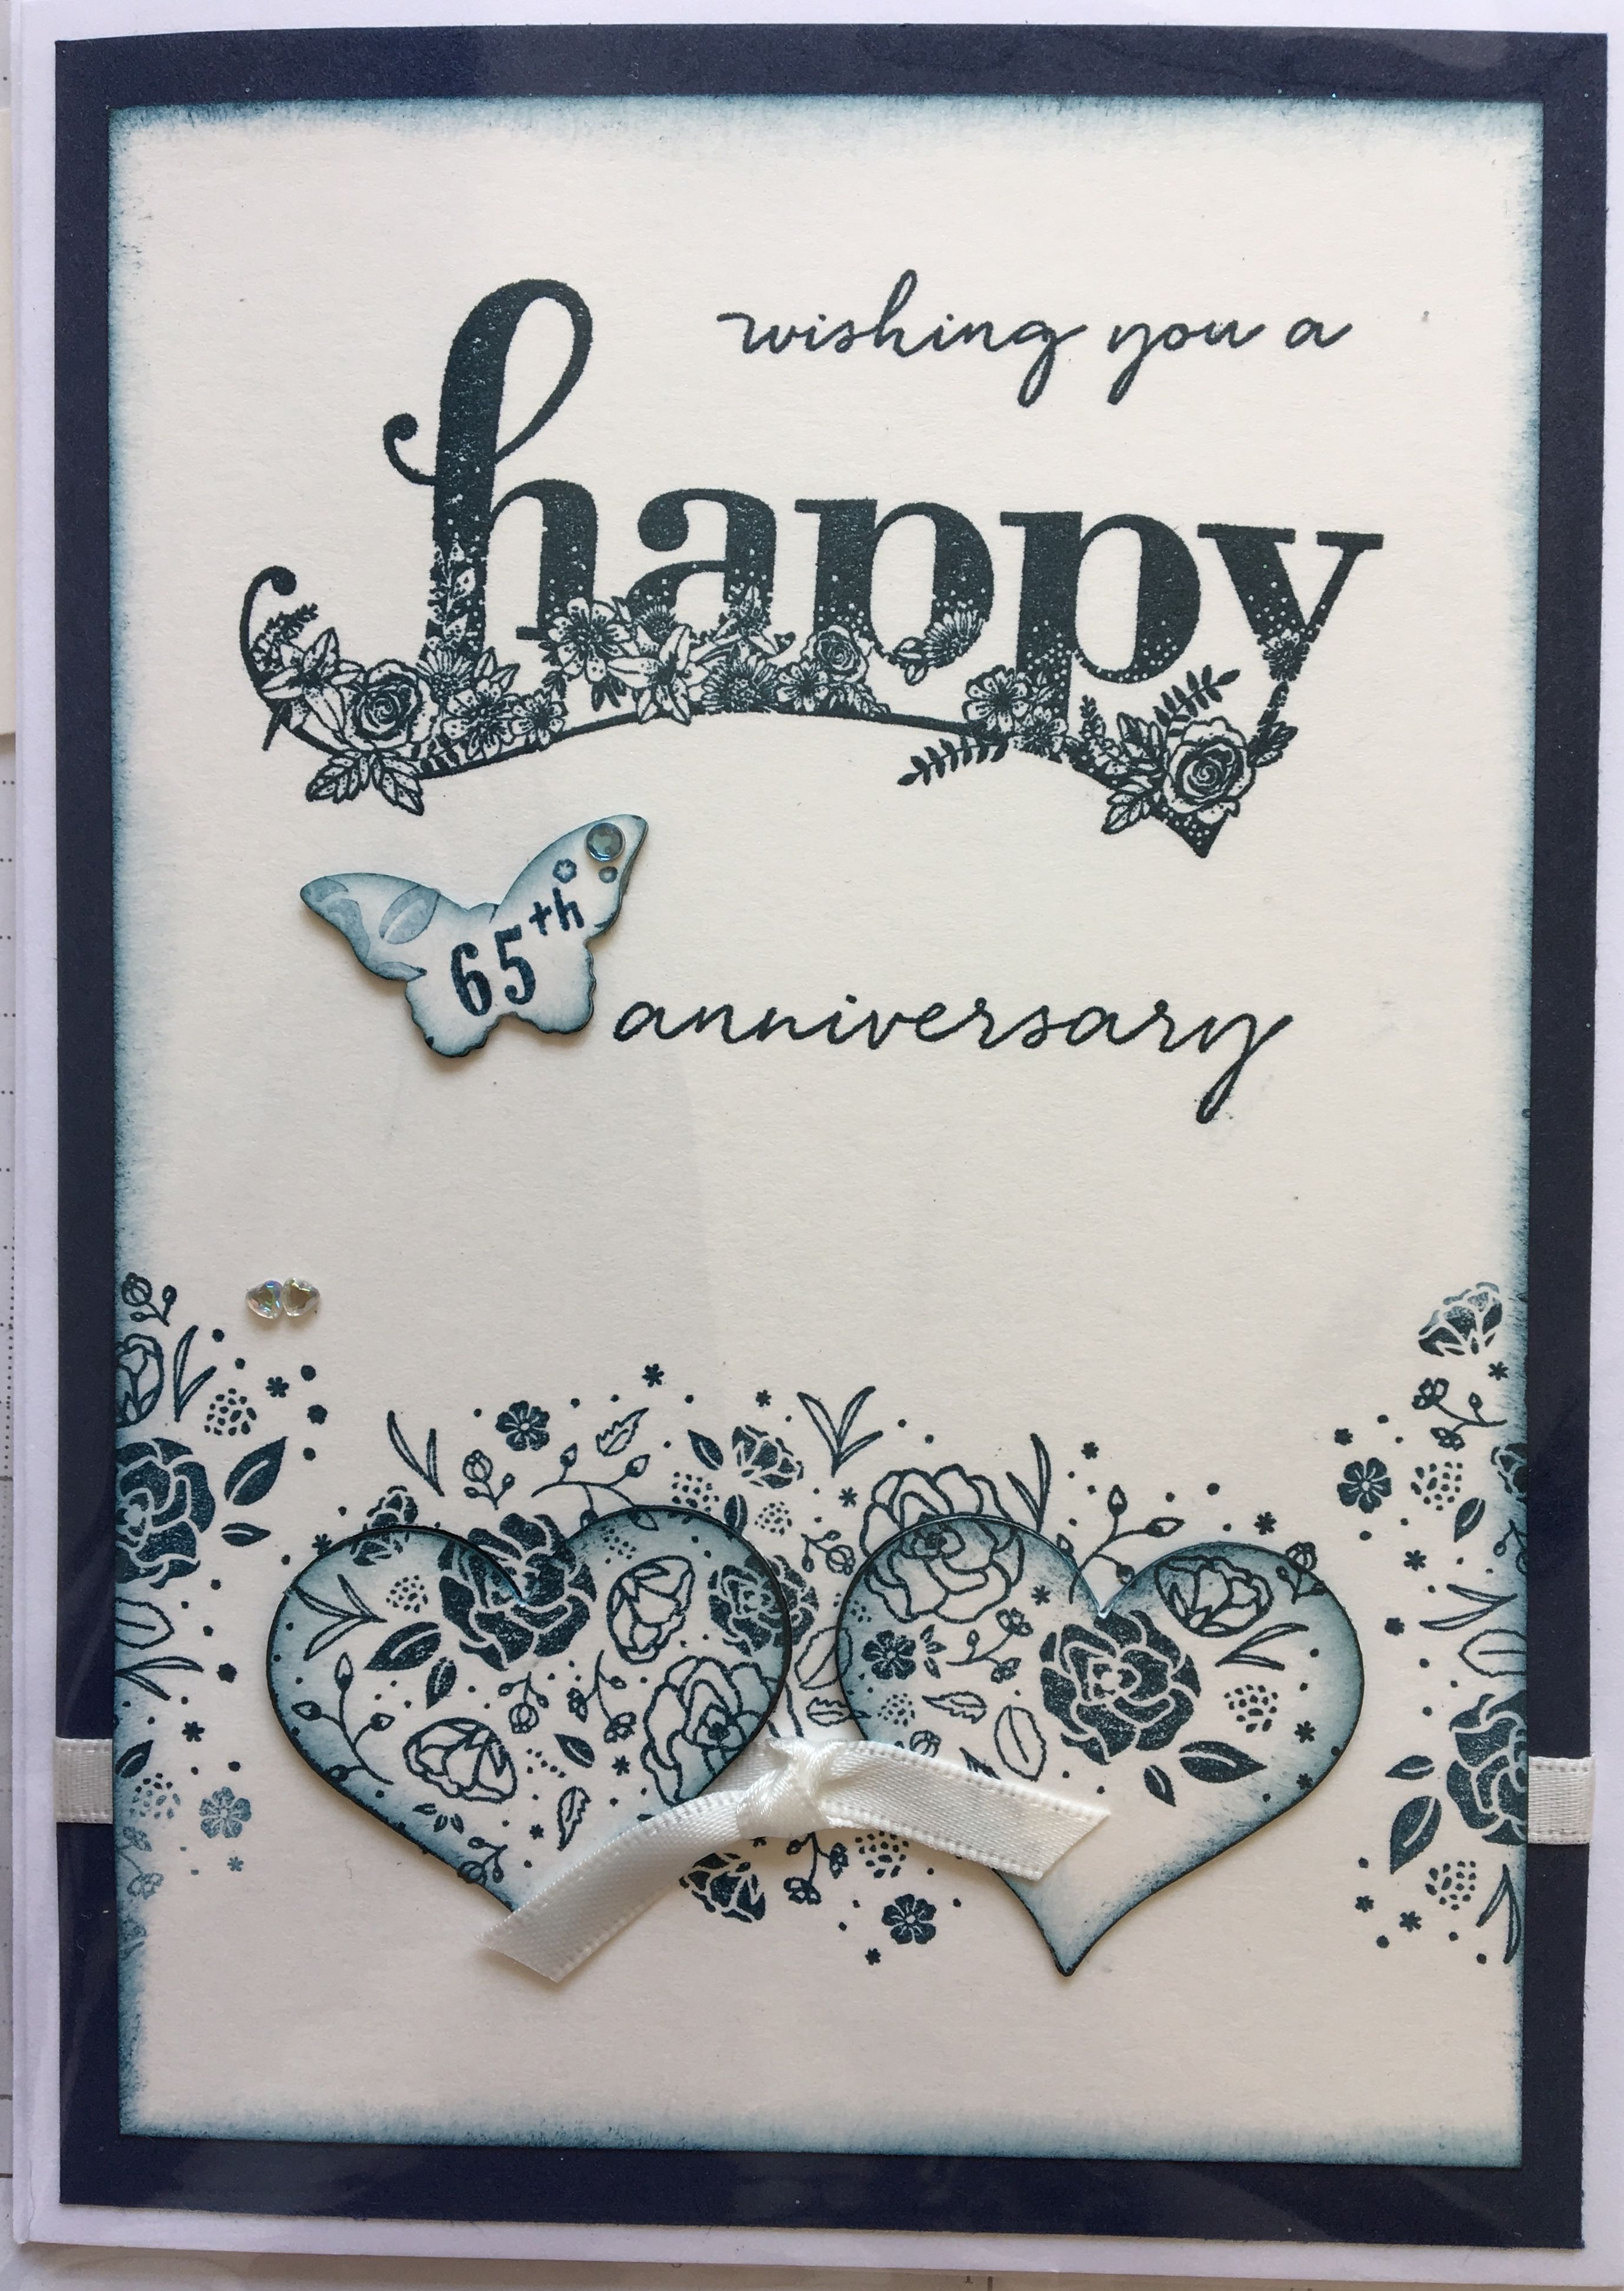 Pin by Jean Dodds on Cards 65th anniversary, Cards